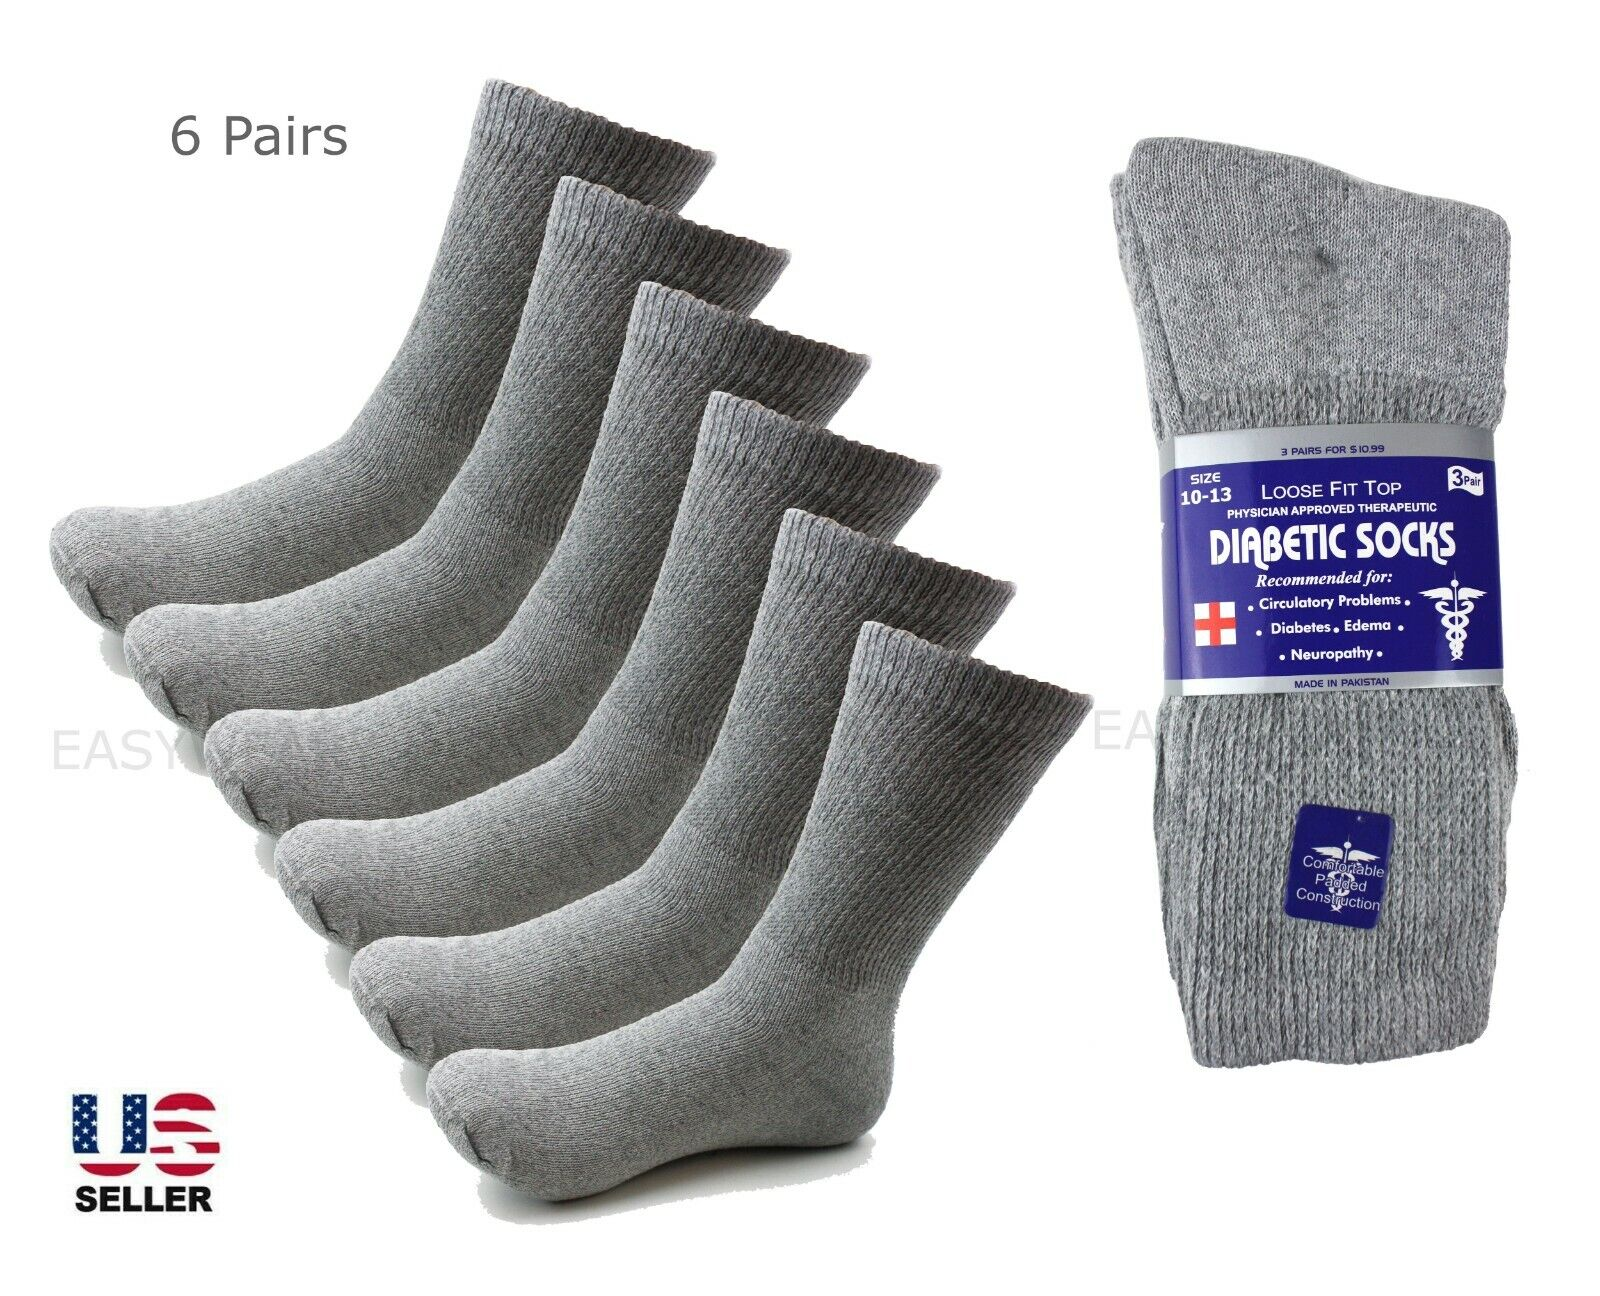 Lot 6 Pairs Diabetic Socks Crew Circulatory Socks Health Cotton Loose Fit Top Clothing, Shoes & Accessories